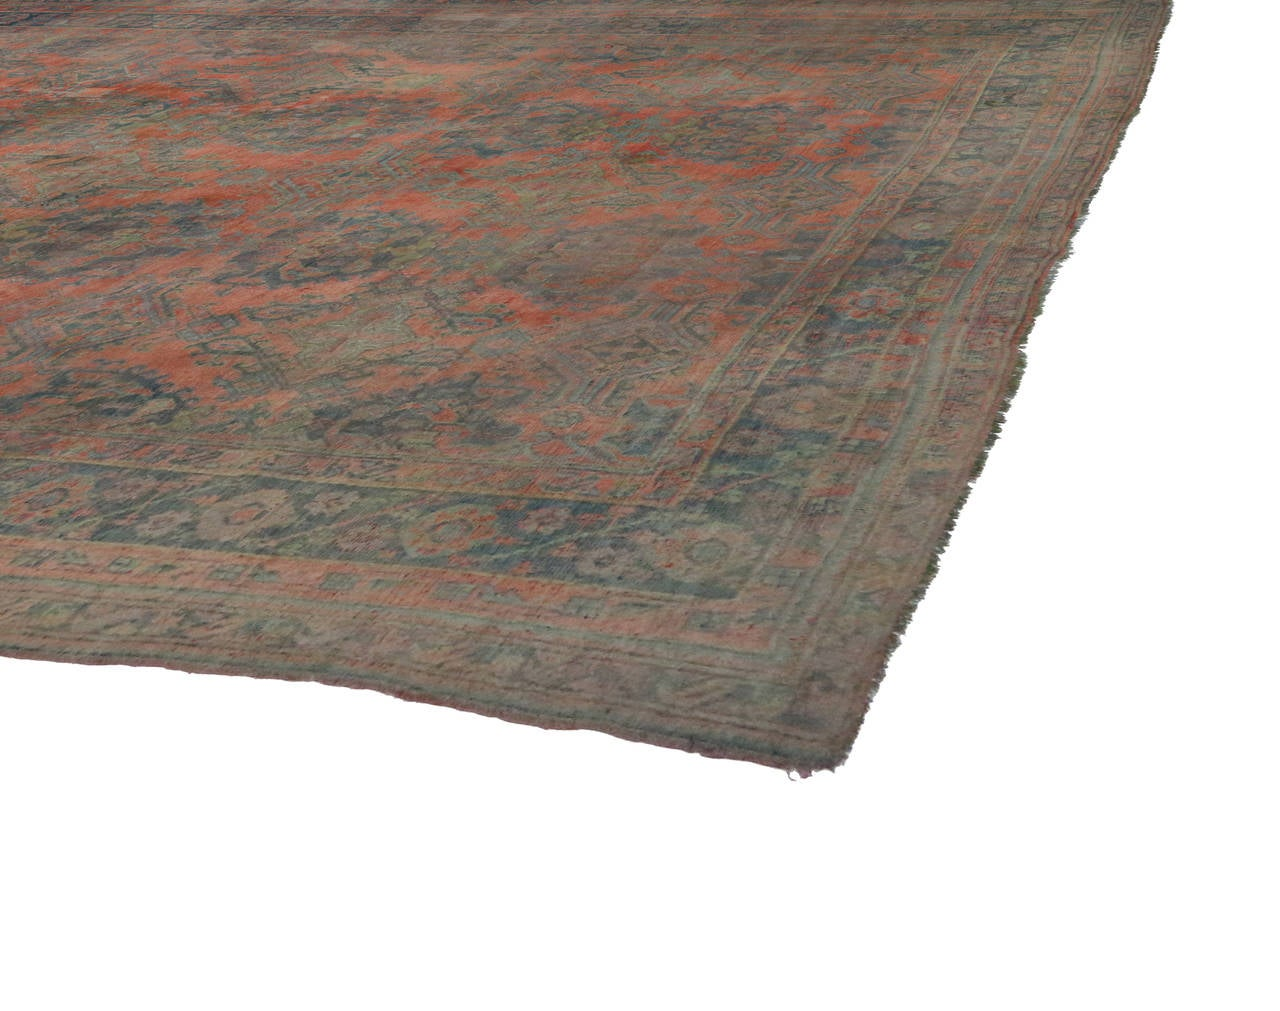 Antique Turkish Oushak Gallery Rug with Modern Design in Muted Colors 6